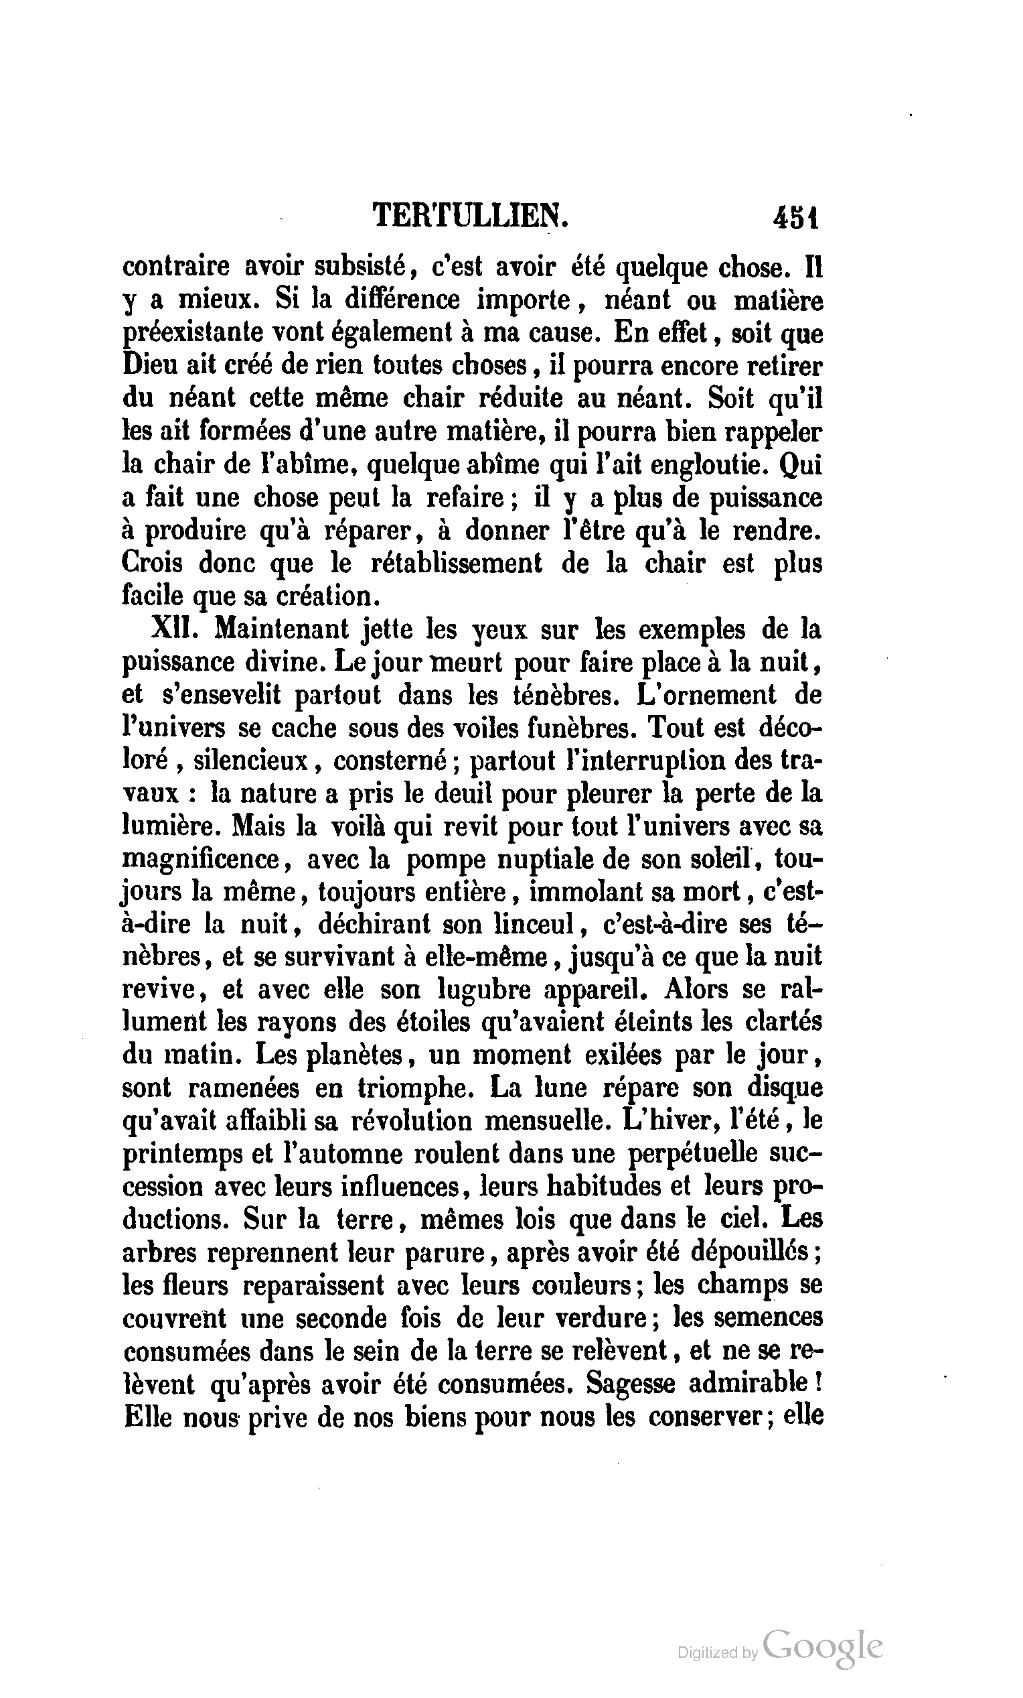 page tertullien uvres compl tes traduction genoud 1852 tome wikisource. Black Bedroom Furniture Sets. Home Design Ideas